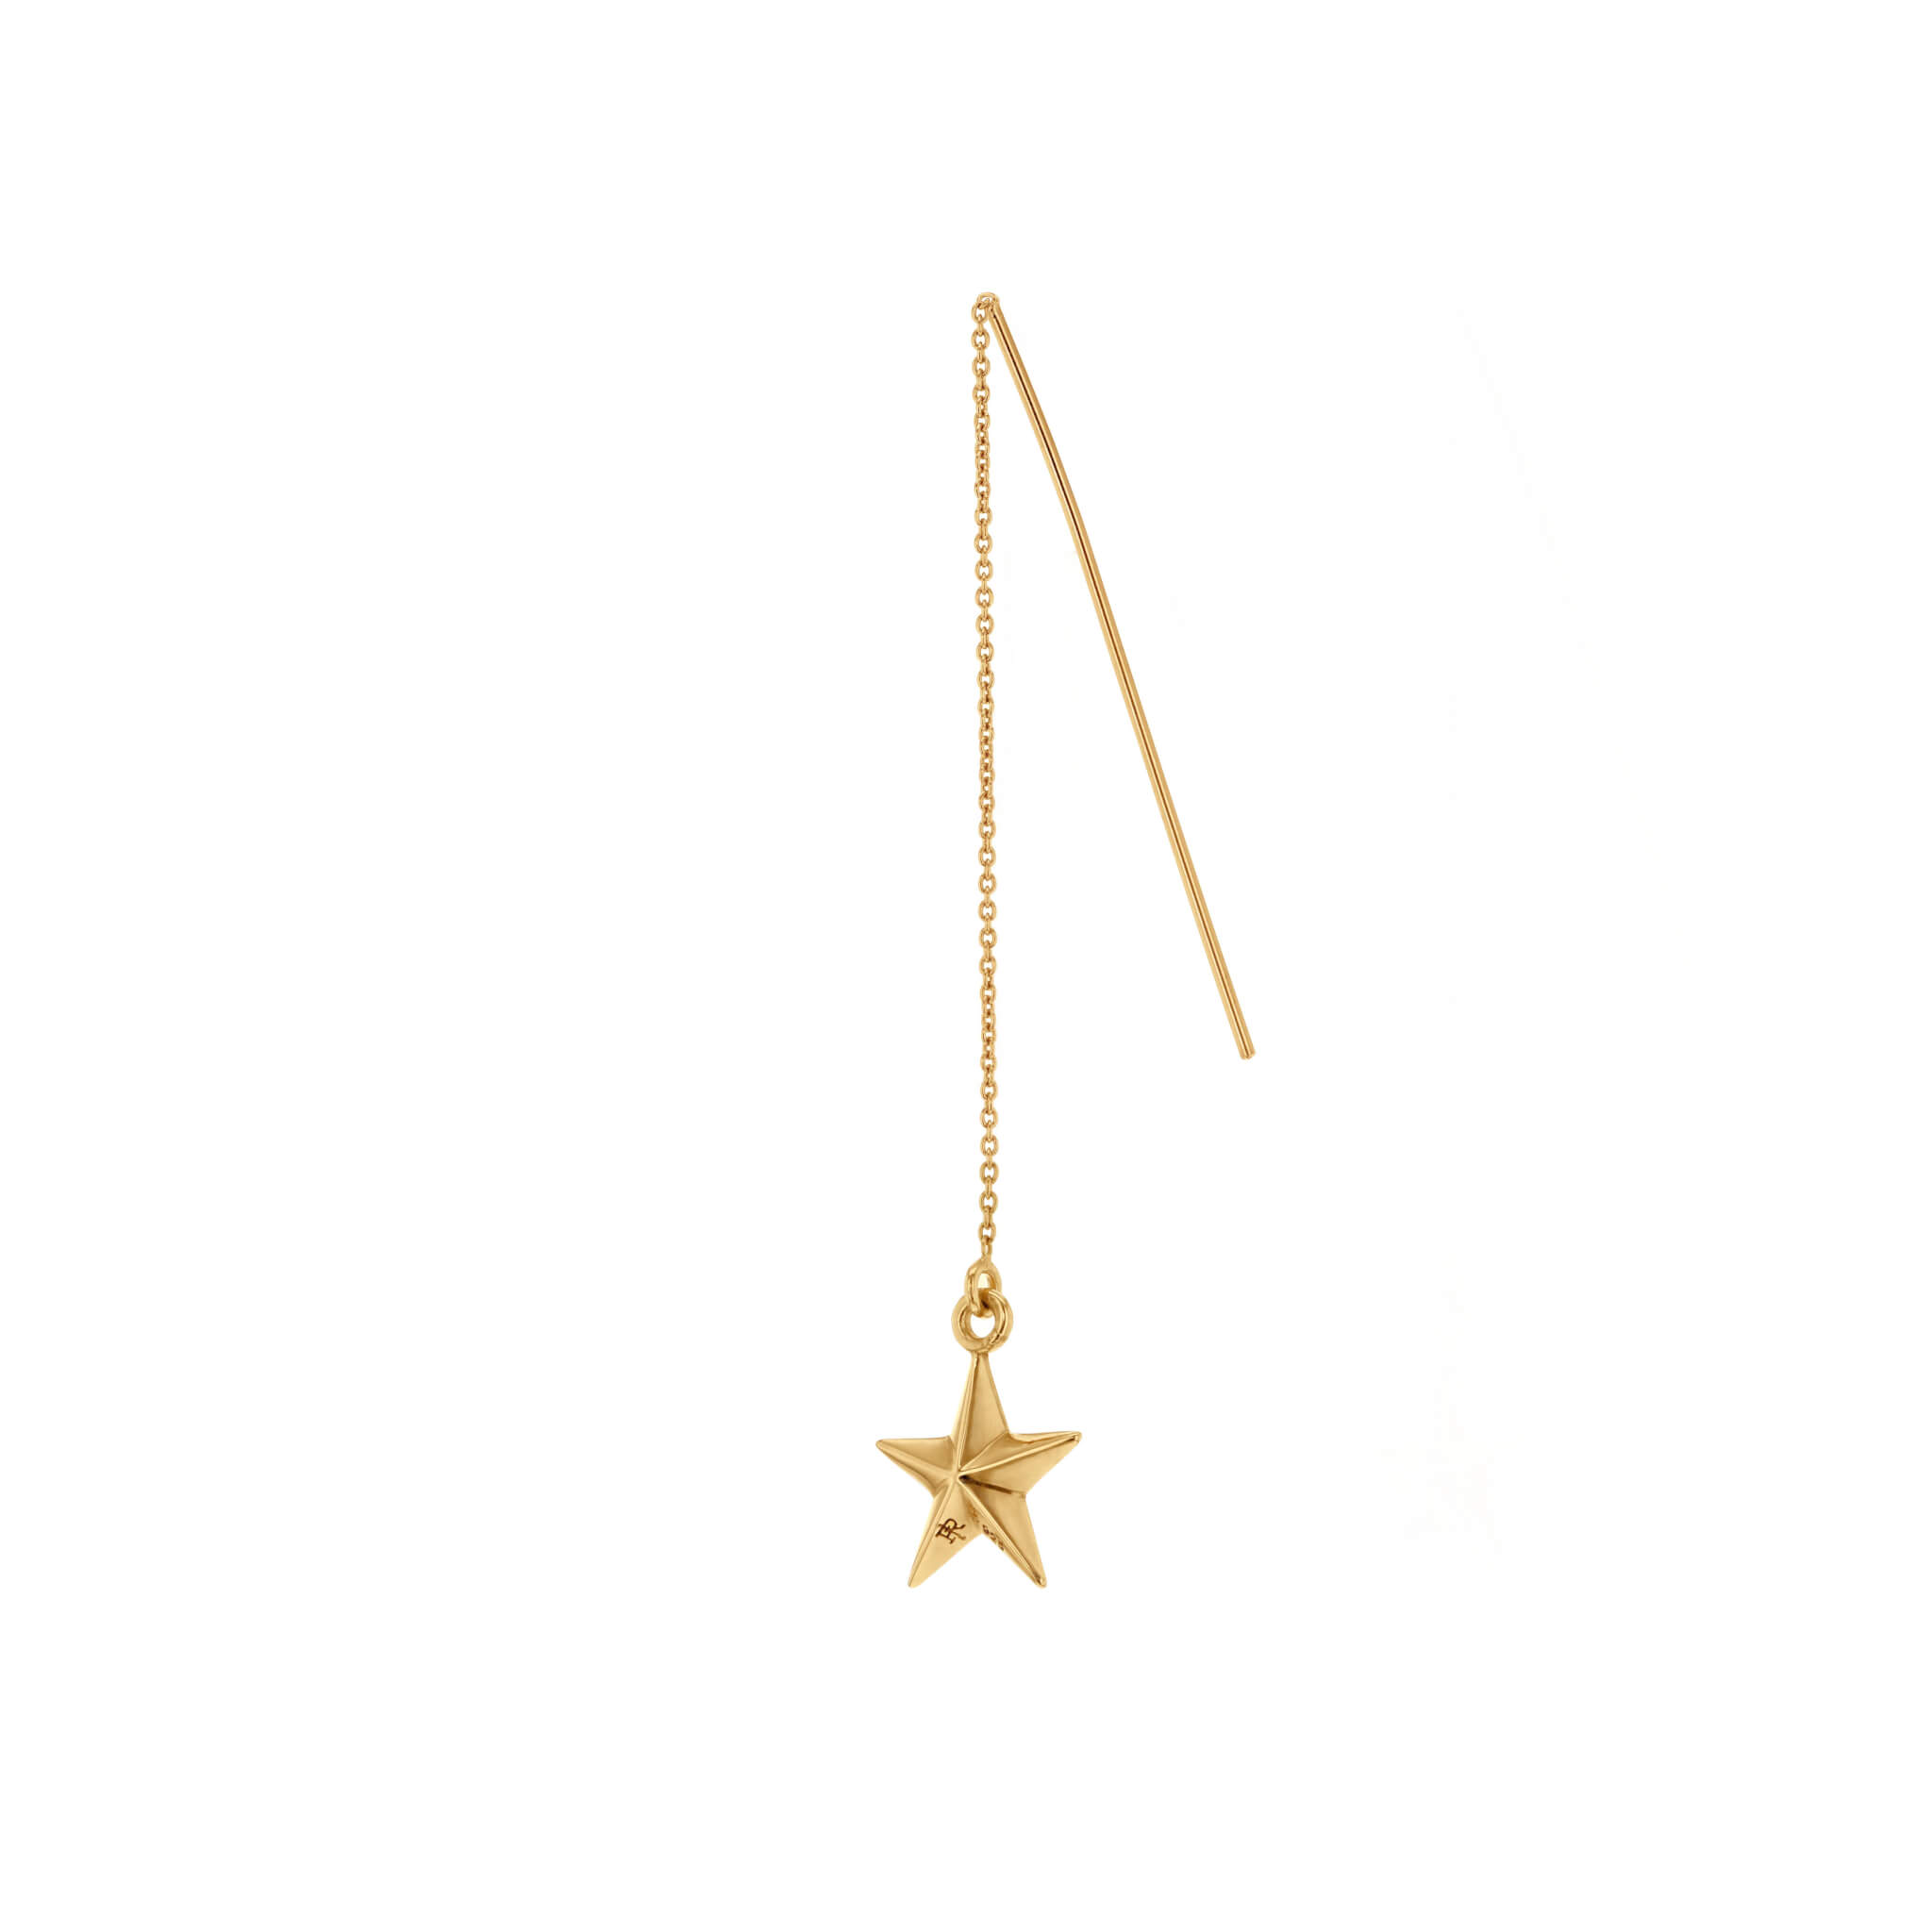 ZS Gold-Gold Single Mini Star Pull Through Earing